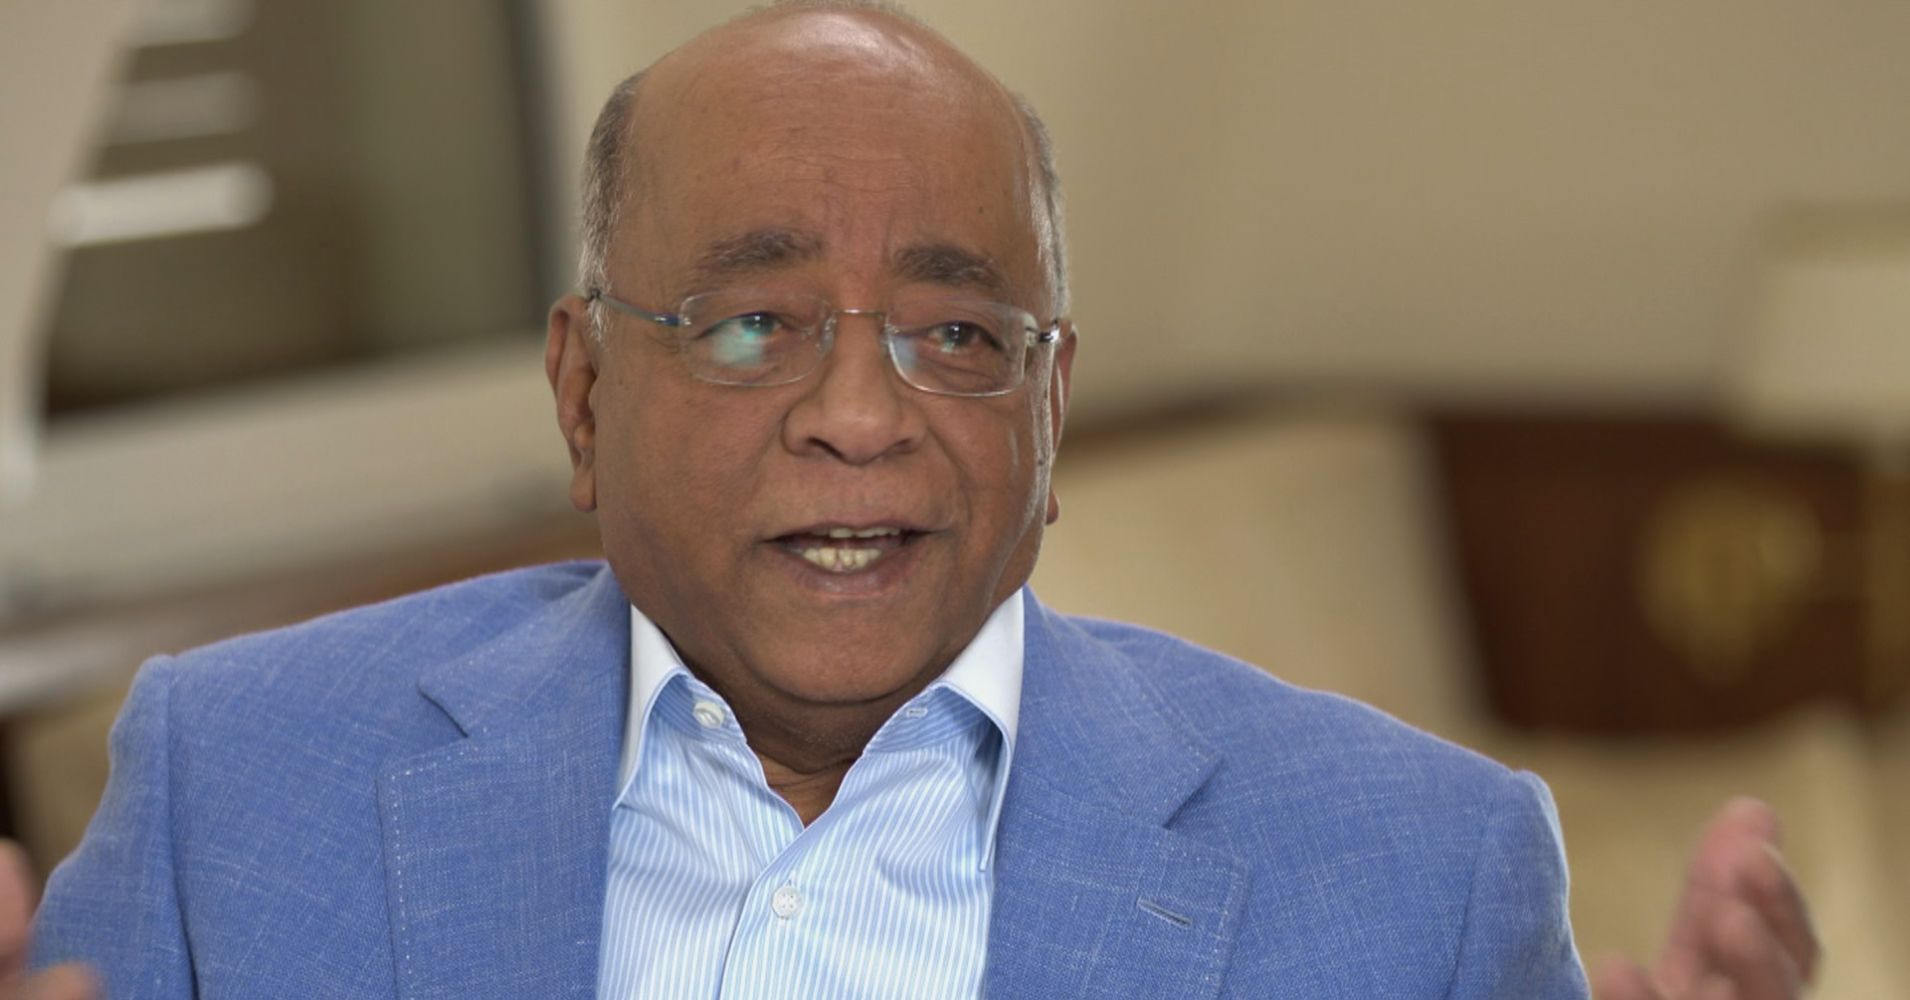 No bank would fund Mo Ibrahim's telco but then he became a billionaire